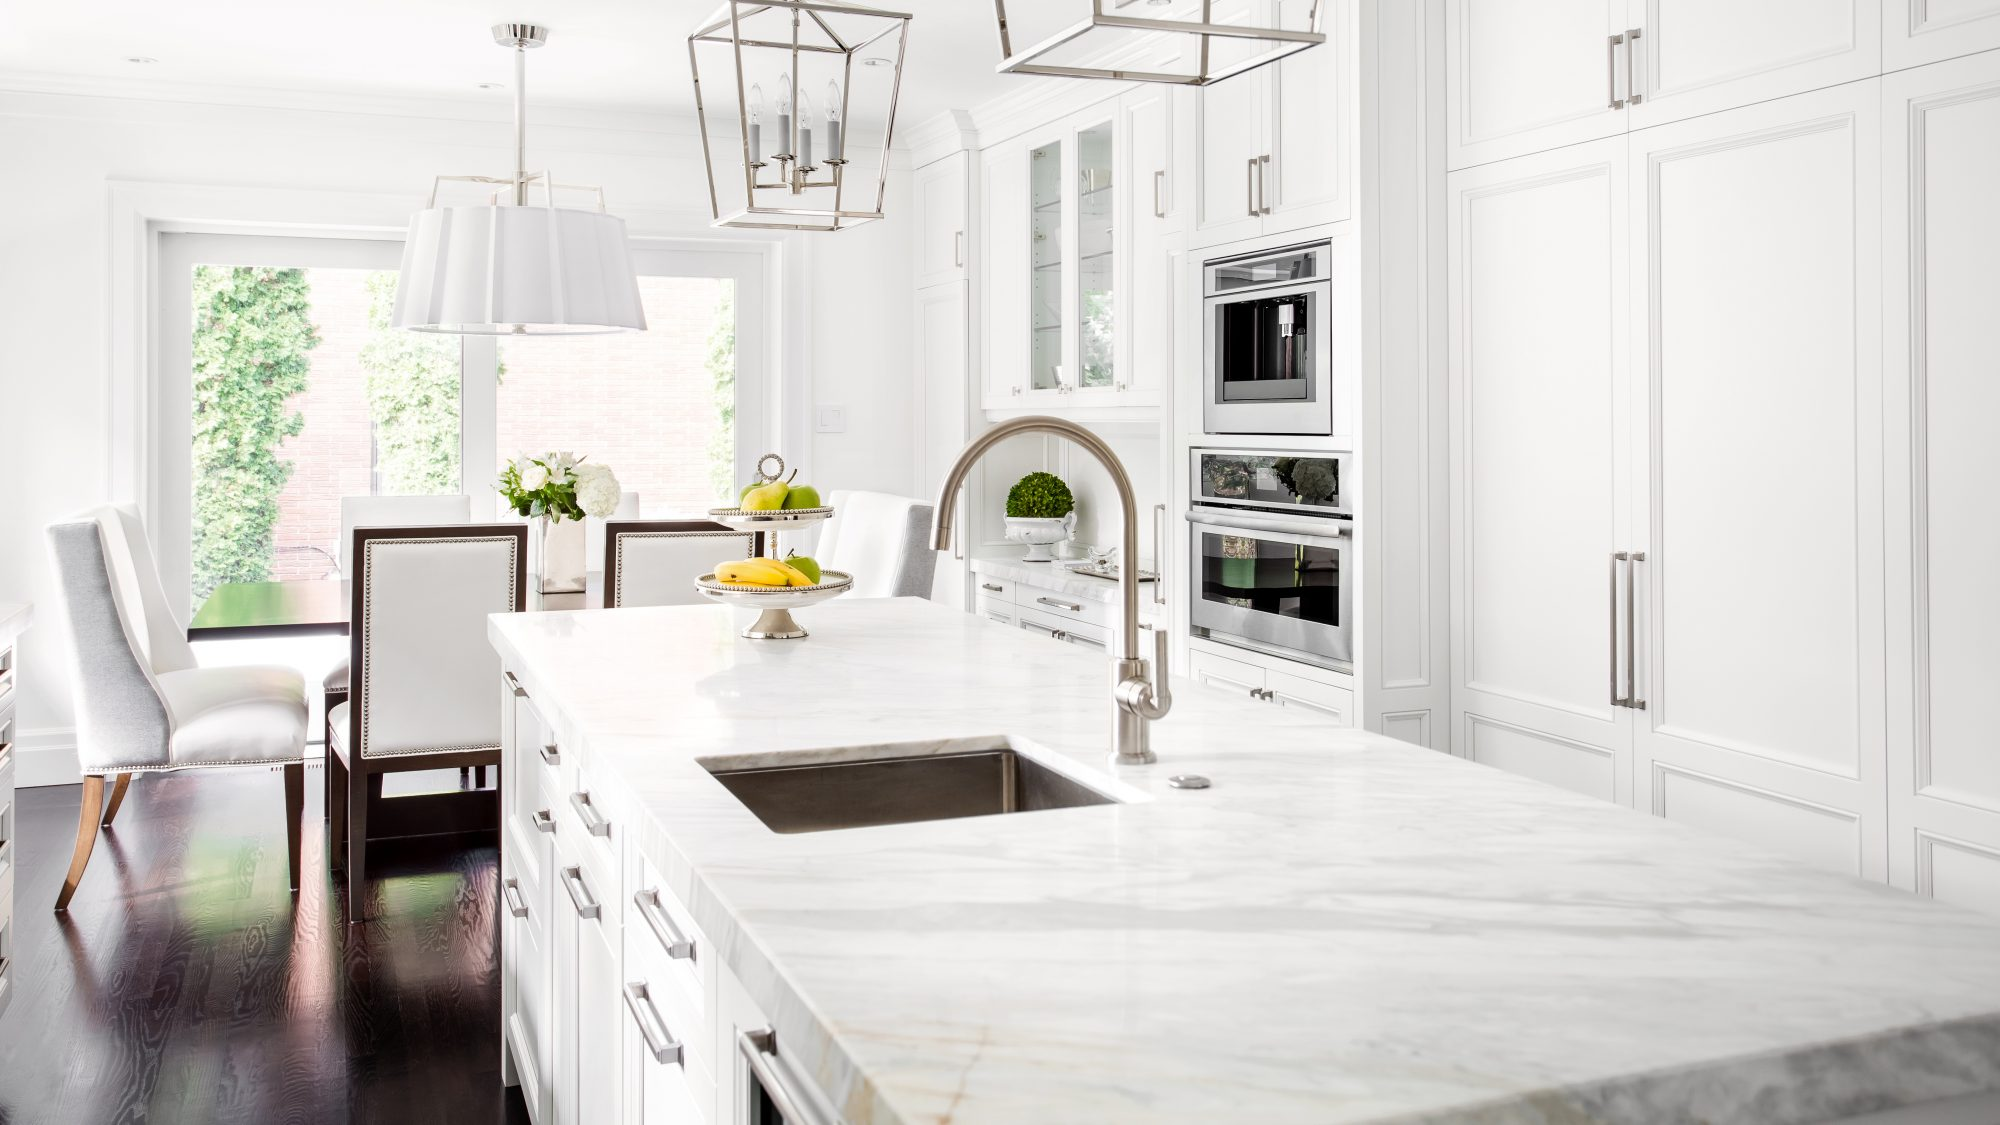 How to clean marble countertops in beautiful white kitchen